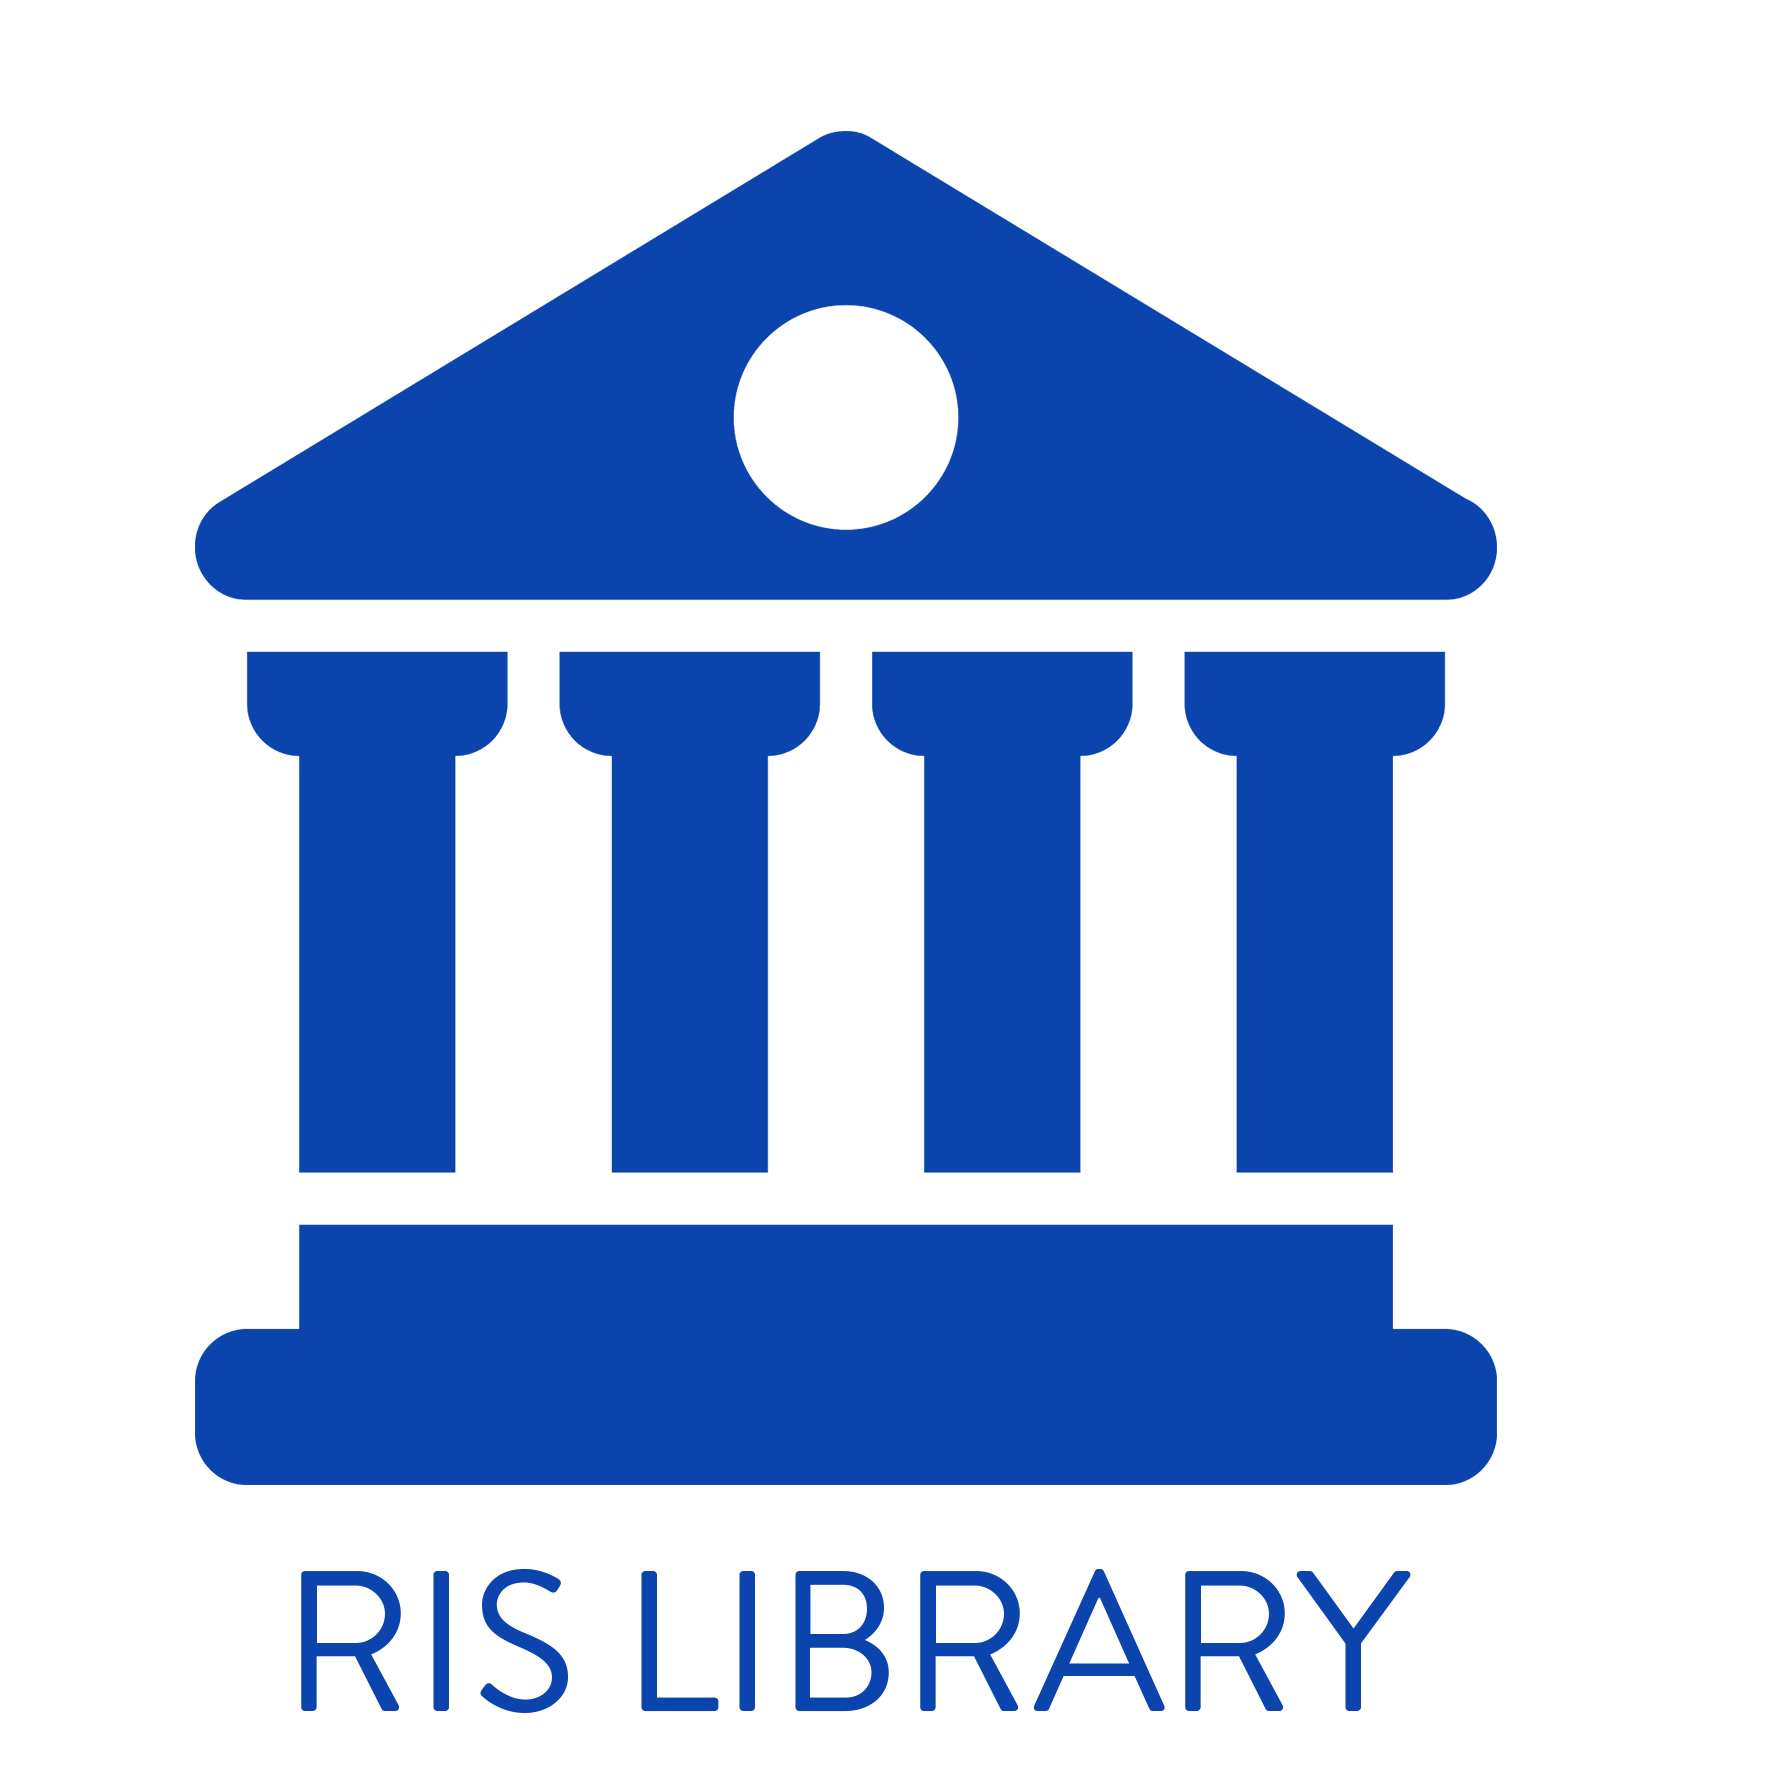 RIS library.png